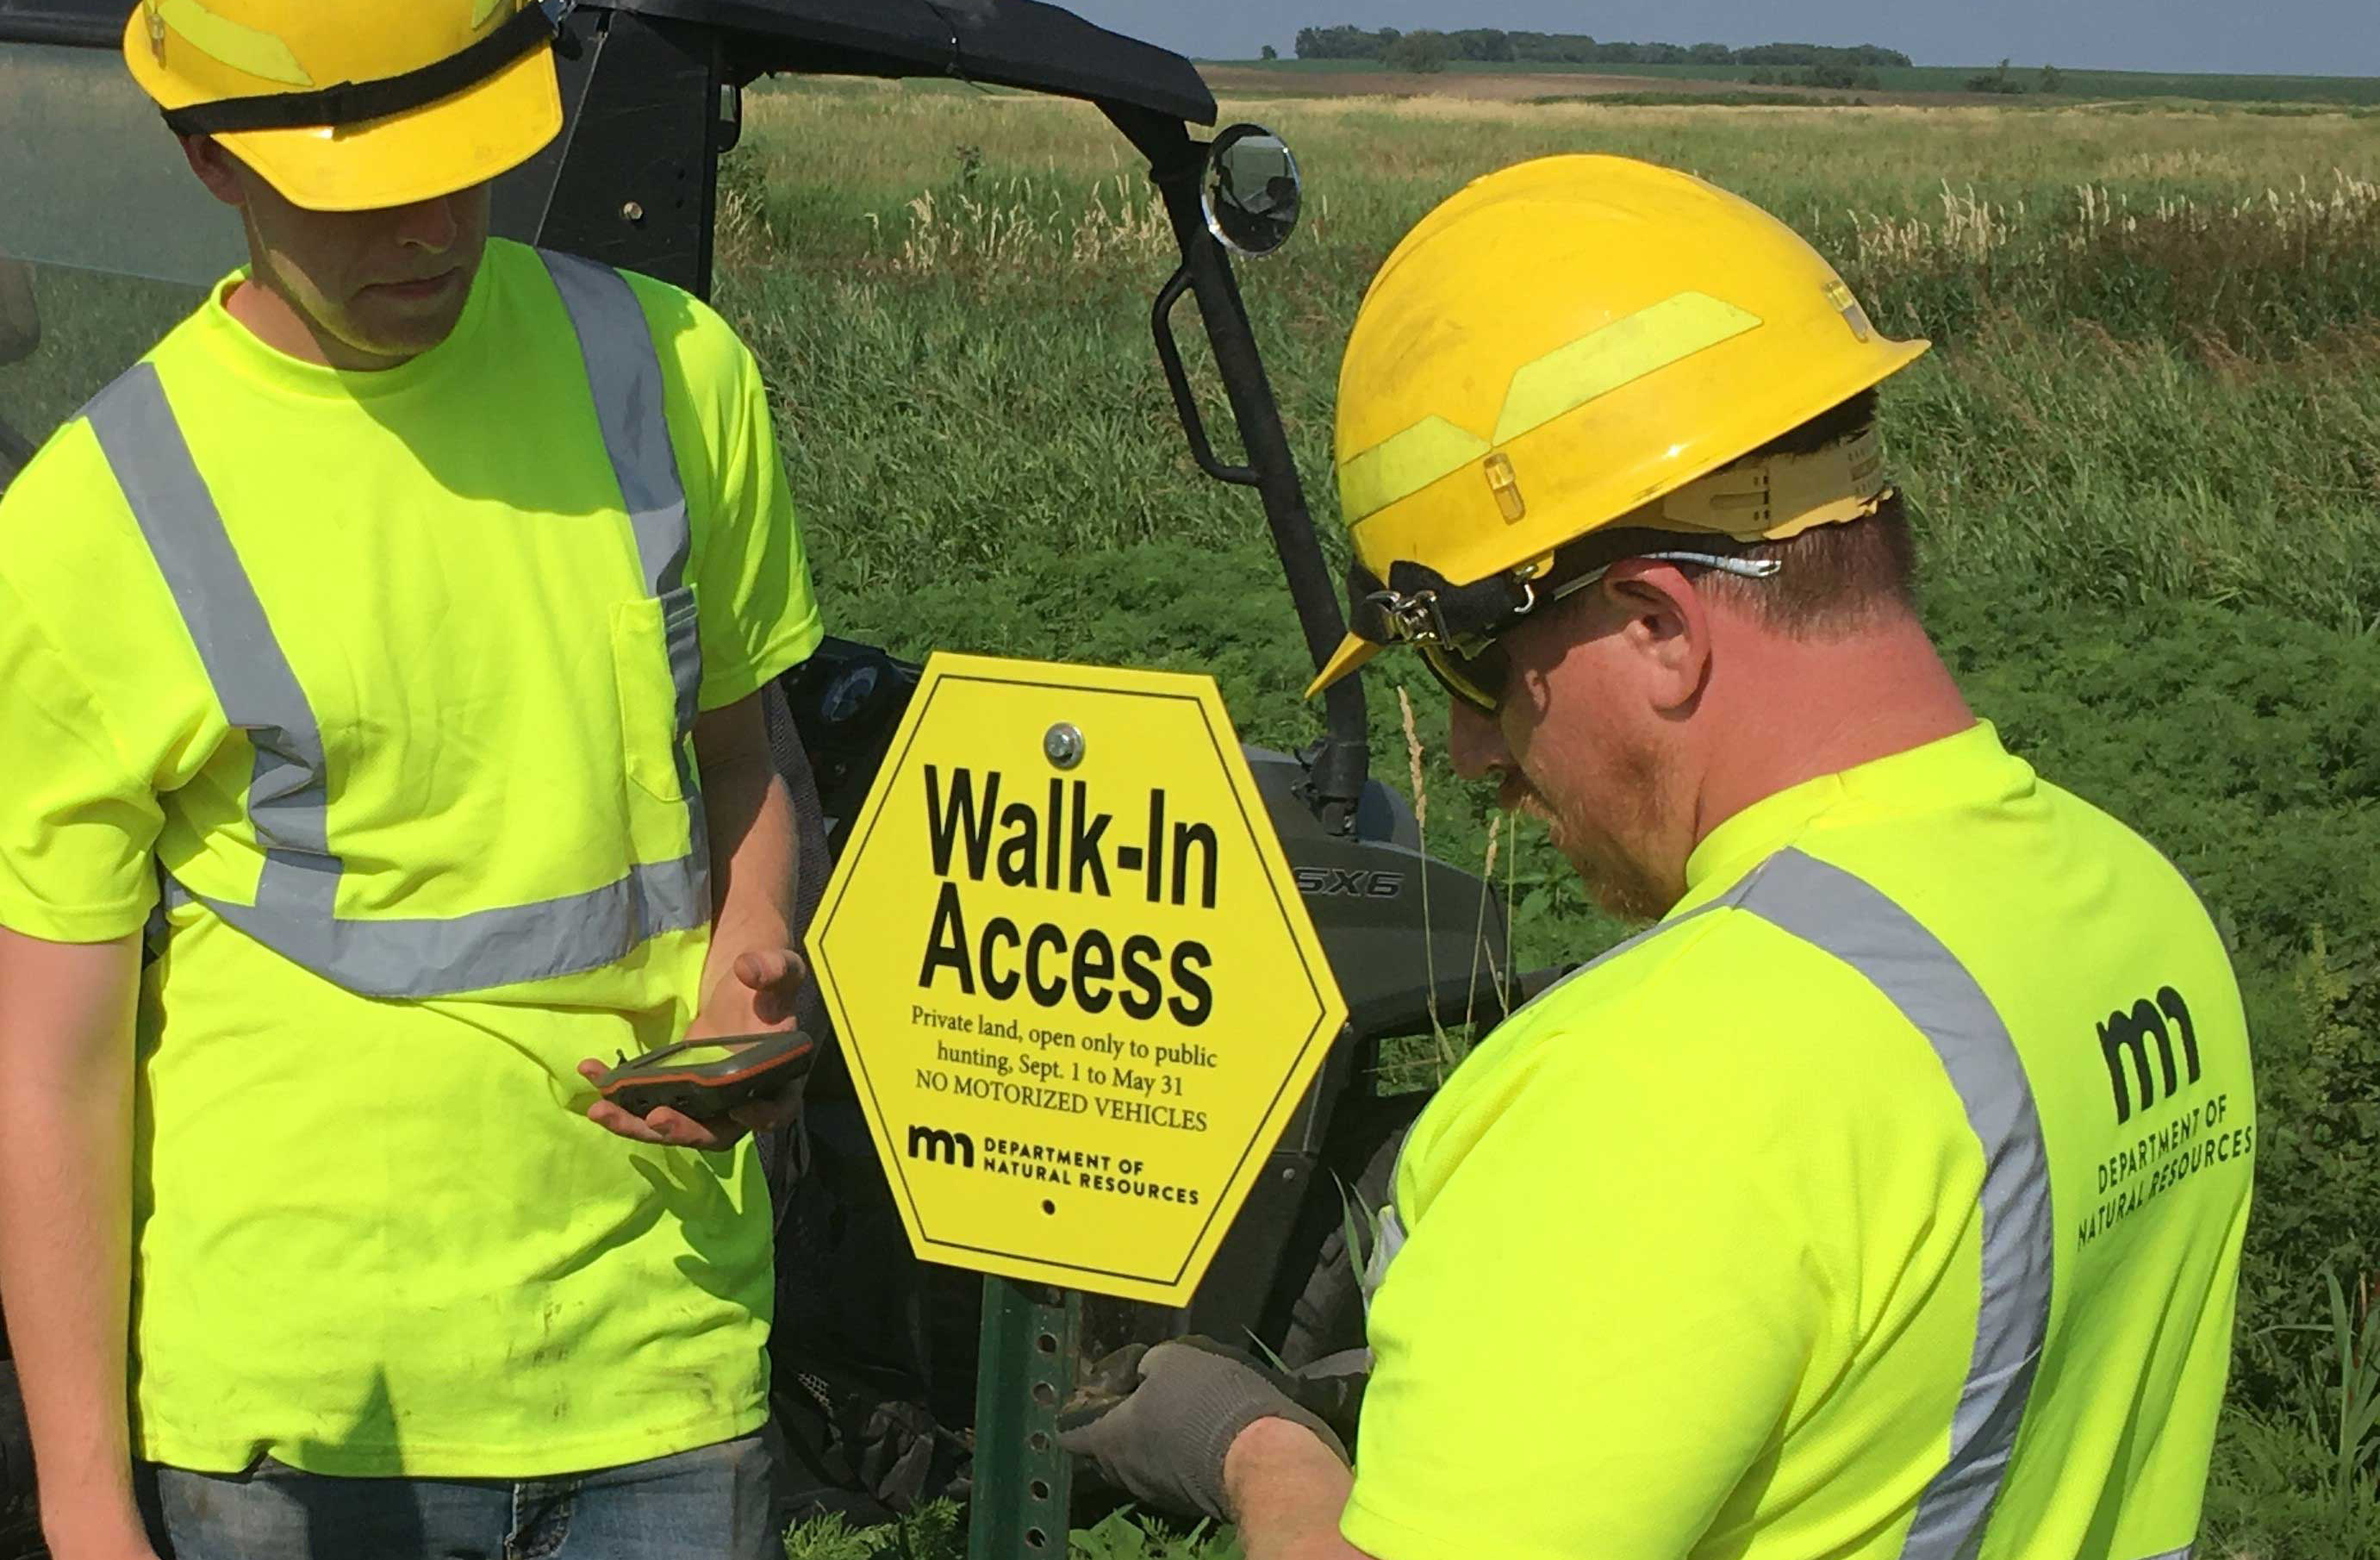 DNR staff place a Walk-In Access sign.